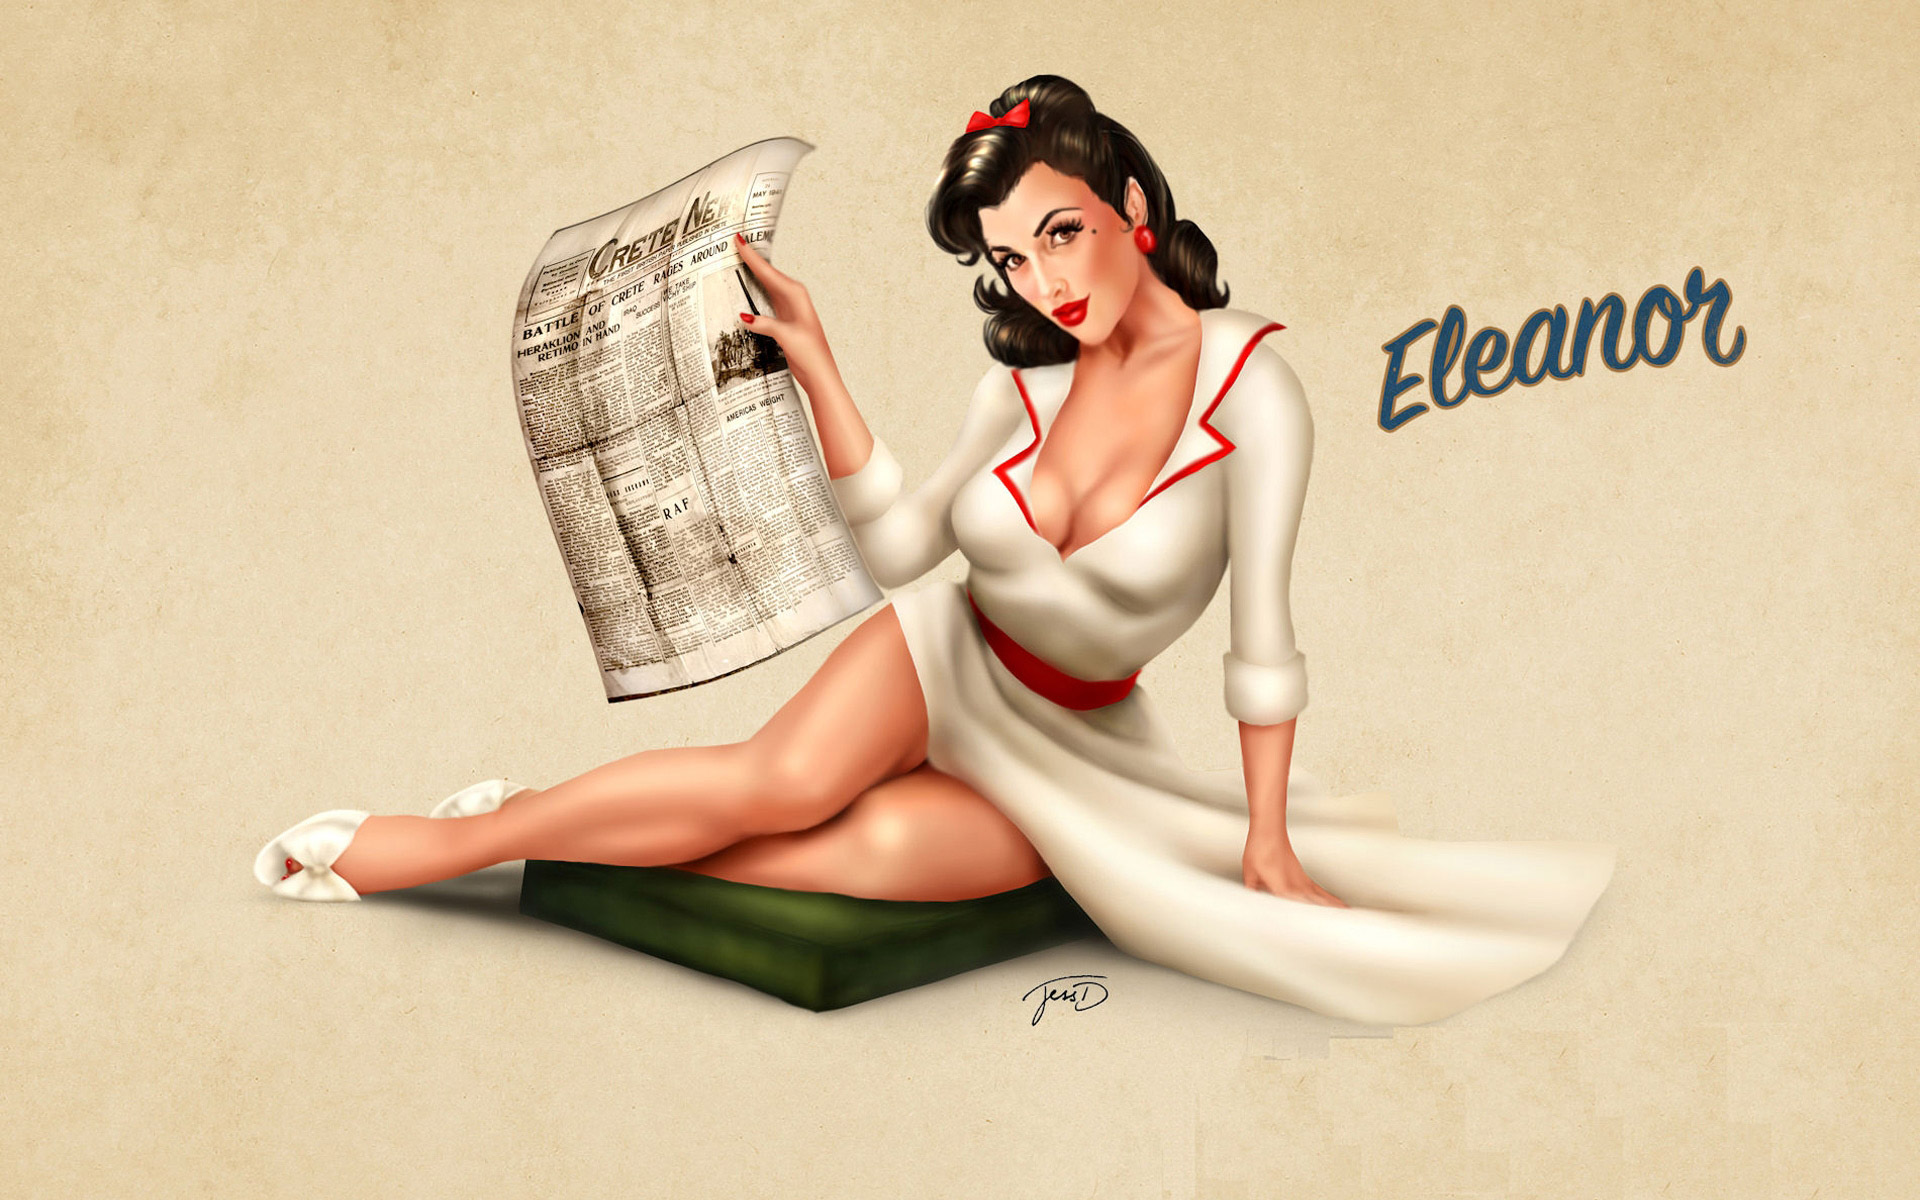 Pin Up Wallpapers Artistic Hq Pin Up Pictures 4k Wallpapers 2019